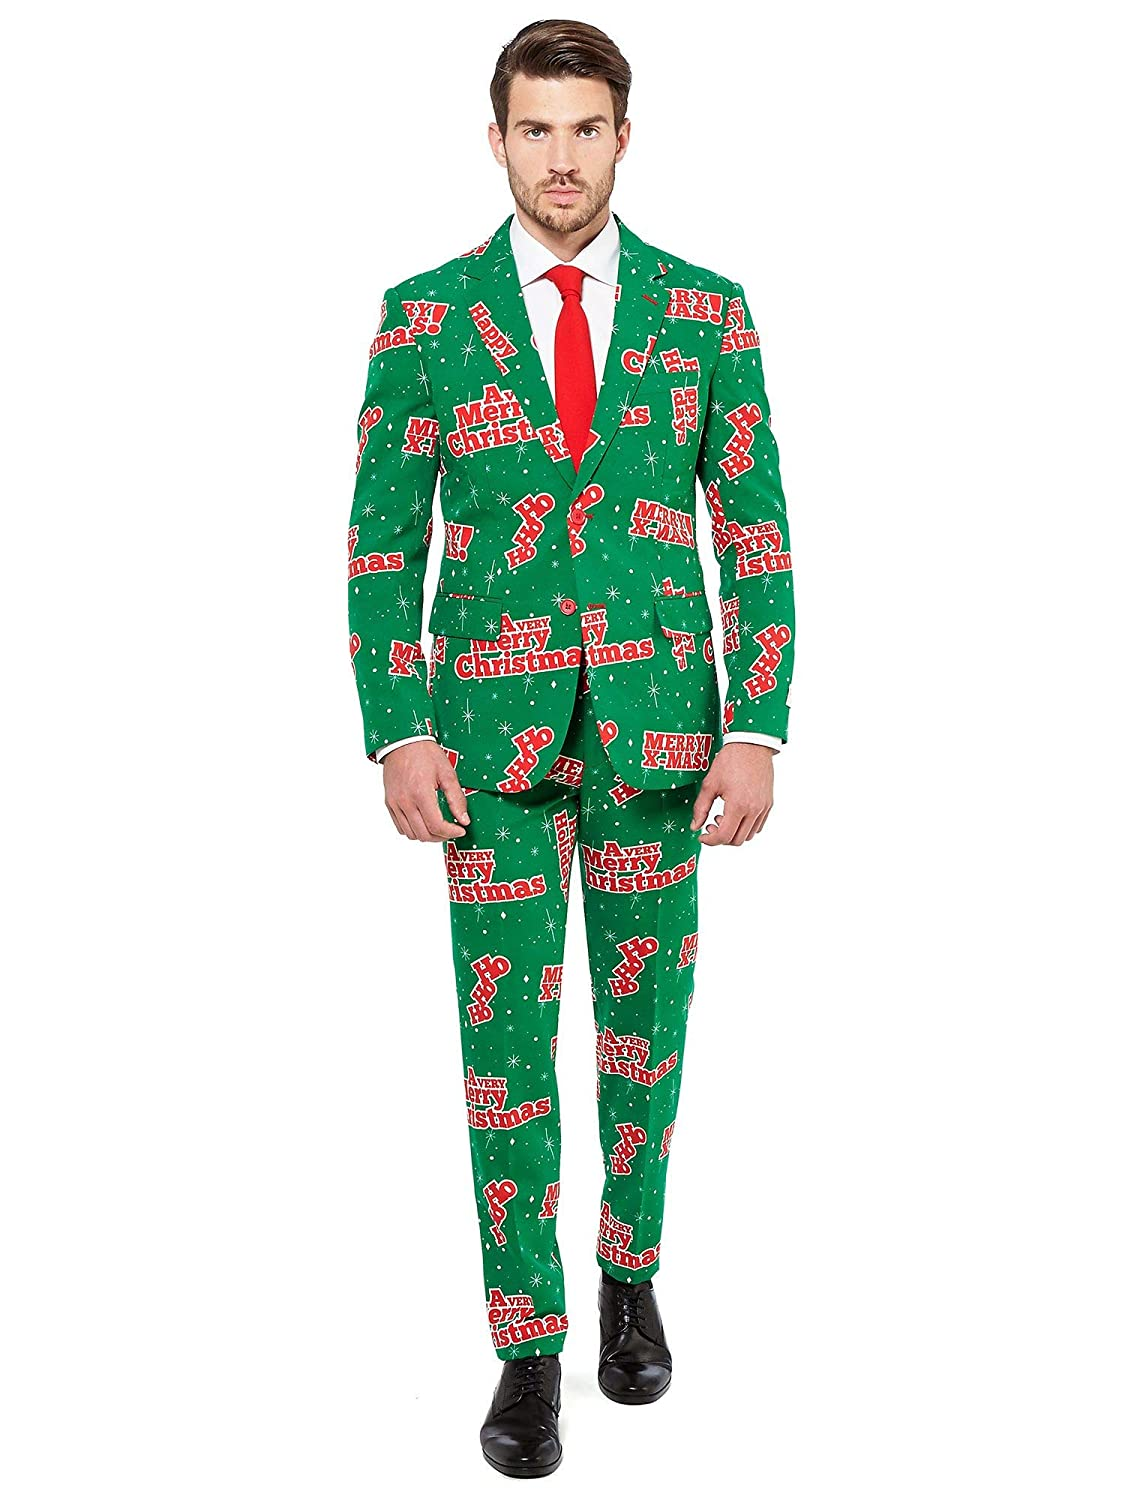 Opposuits Official STAR WARSTM Suit - Starry Side Costume Comes With Pants, Jacket and Tie, Starry SideTM, 58 Santaboss